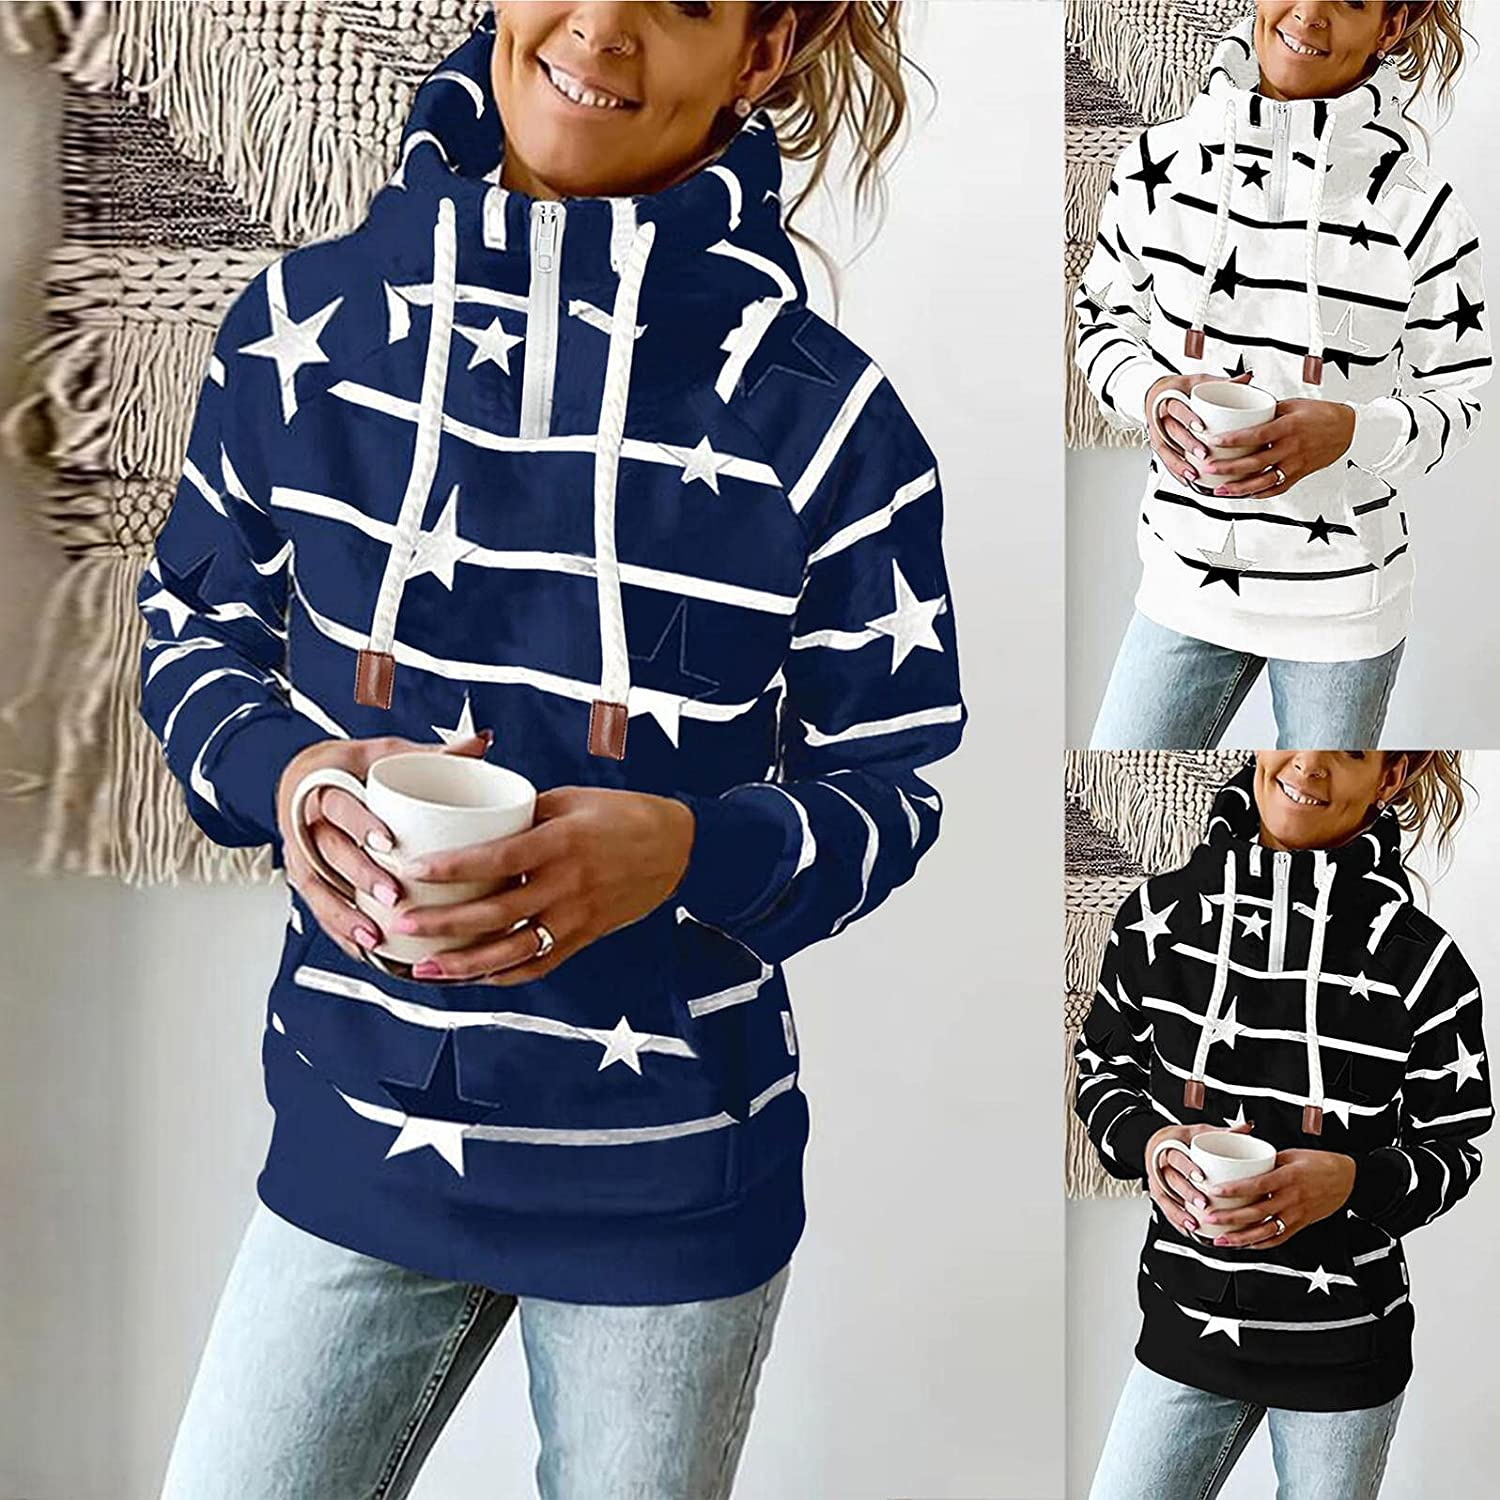 UOCUFY Hoodies for Women Zip Up,Womens Oversized Sweatshirts Striped Printed Long Sleeve Pullover Plus Size Fall Tops